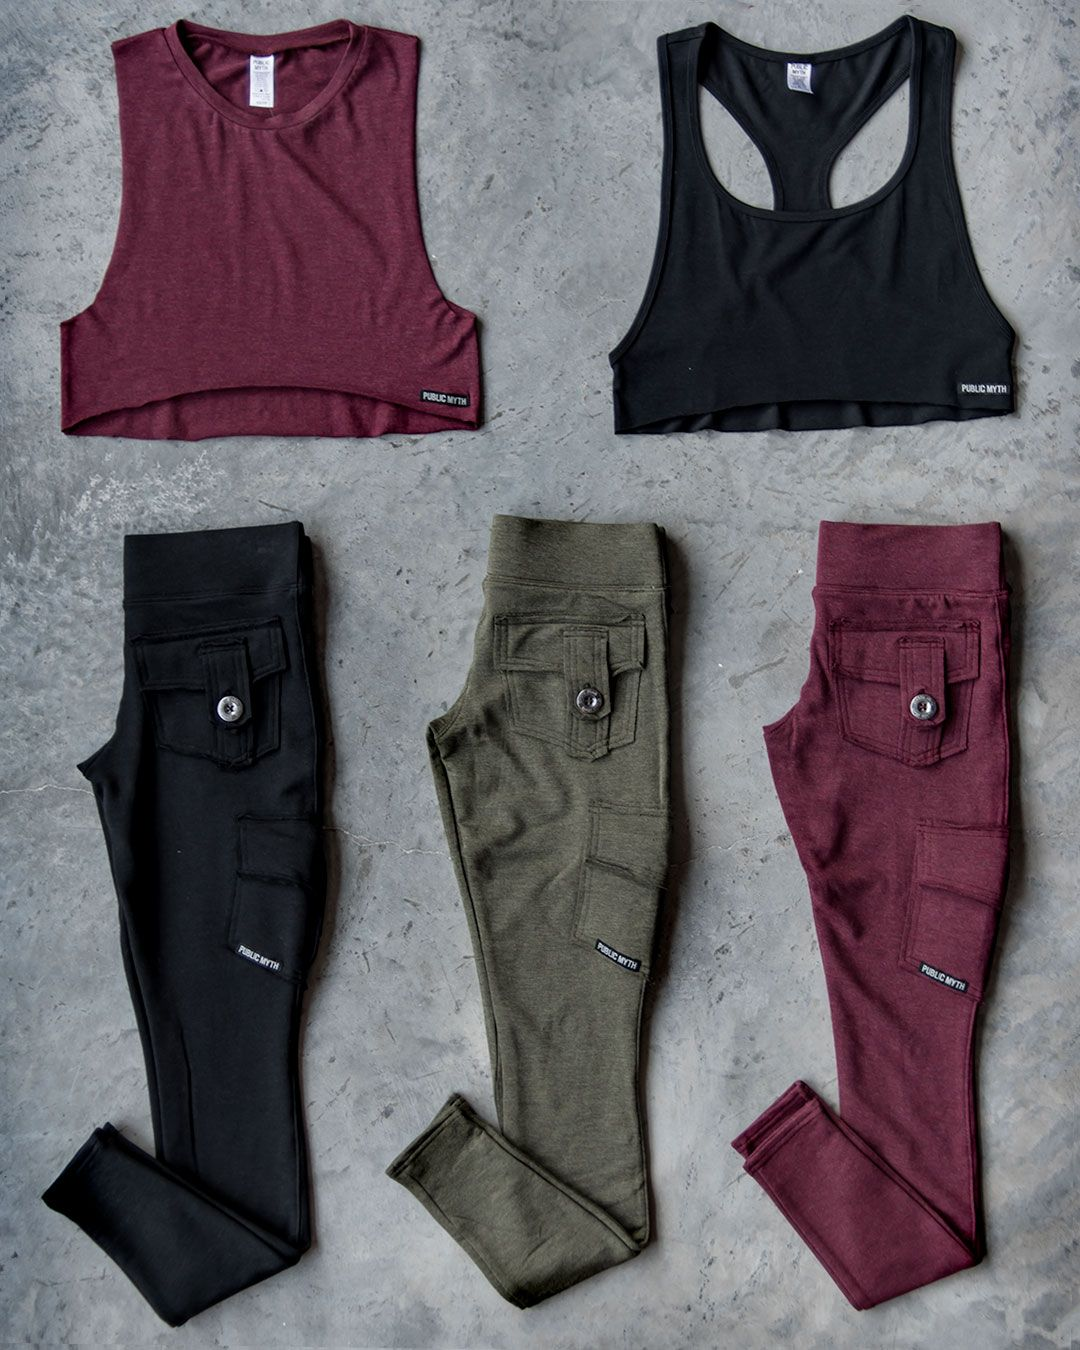 d21f1de21504a PUBLIC MYTH ACTIVE WEAR Featured Products: Bamboo Pocket Leggings Bamboo  Crop Racerbank Tank Bamboo Muscle Crop